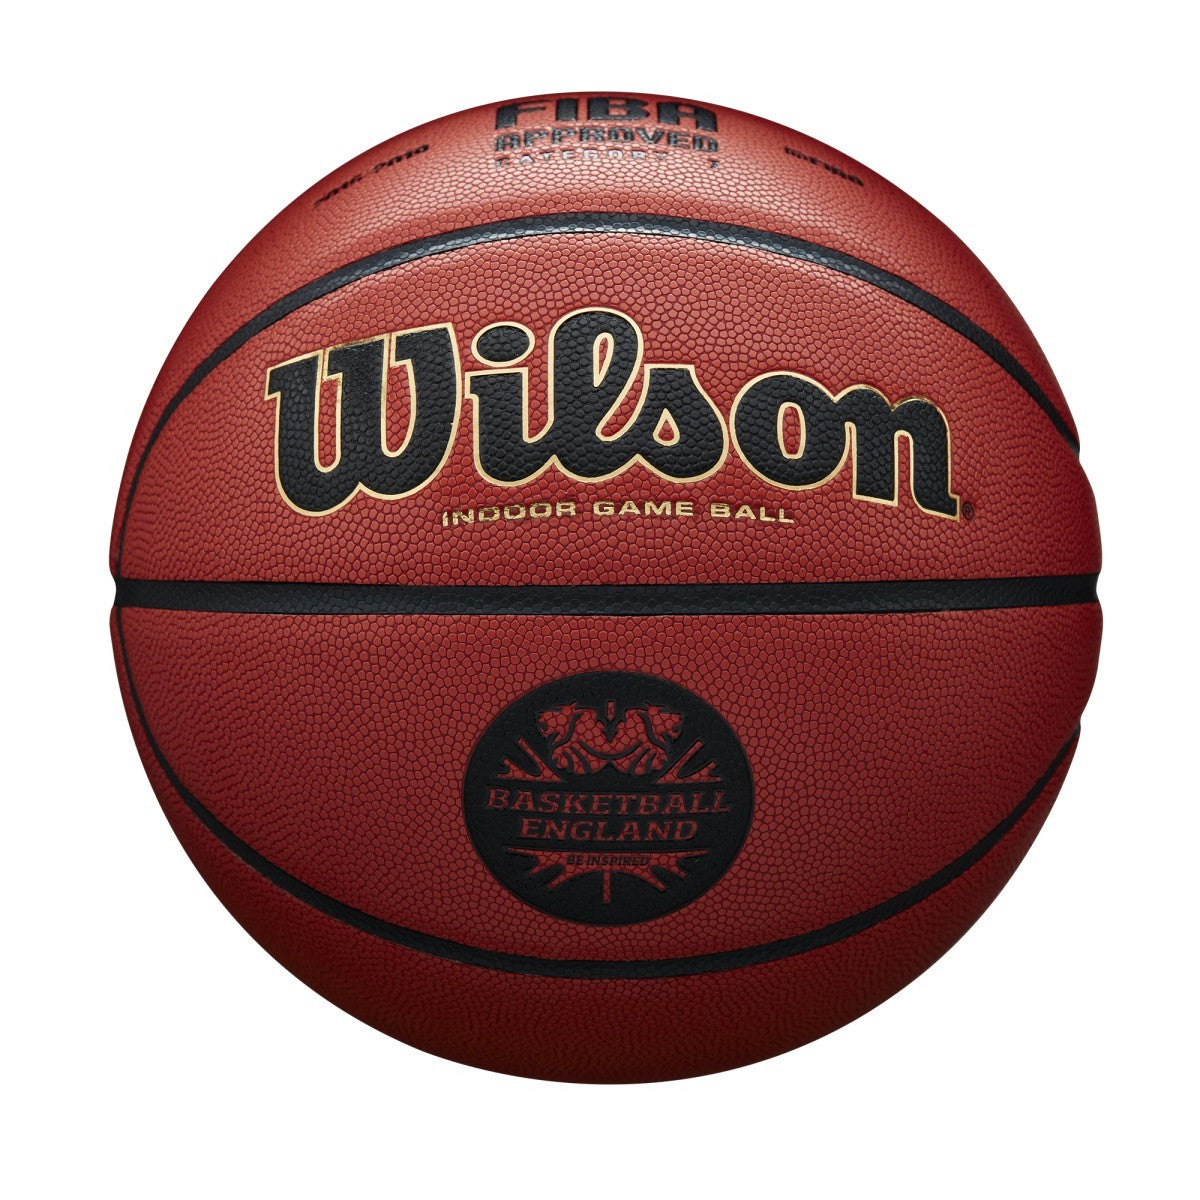 Wilson Basketball England Solution Official Game Ball - Tan - Size7 - WL-WTB0616XBBE